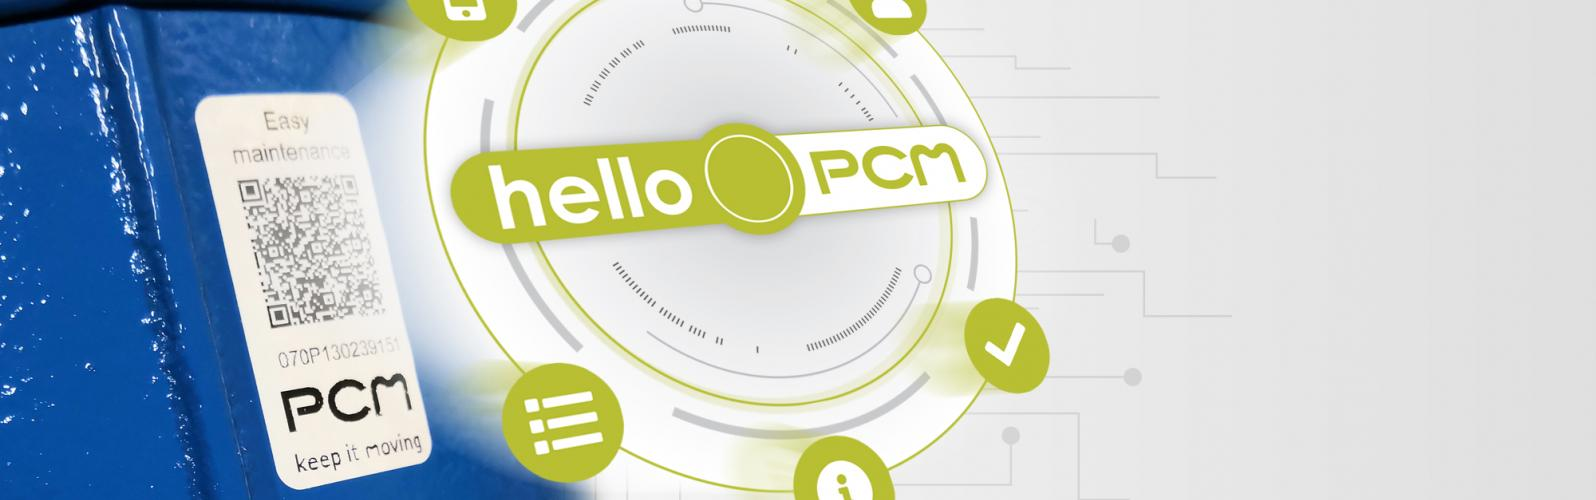 Hello PCM - Digital application